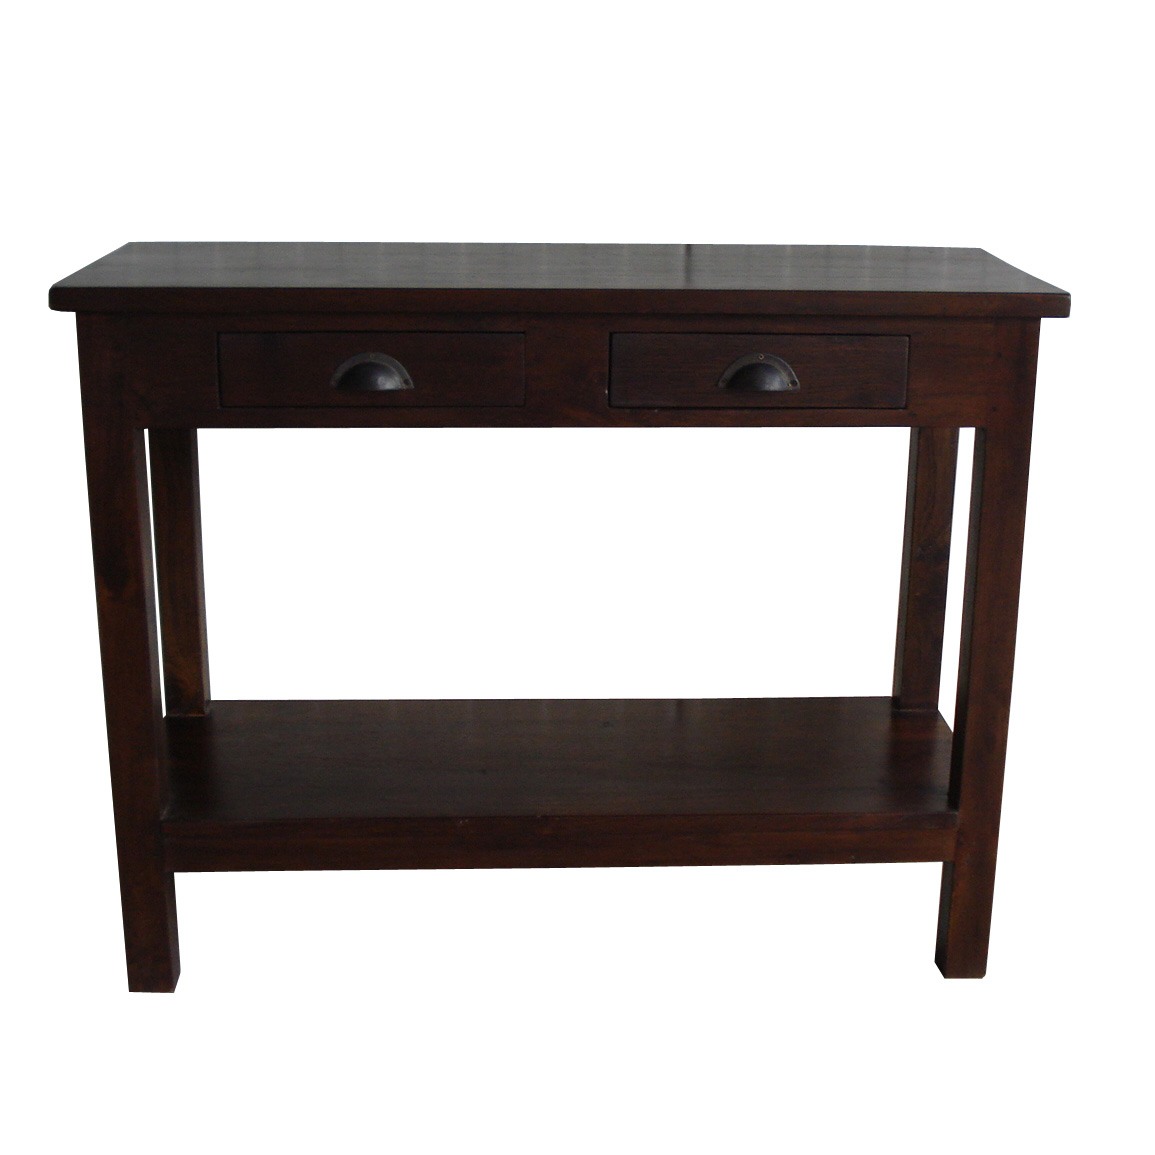 Sidetable Koloniaal Hout.Side Tables Ajc Meubelen